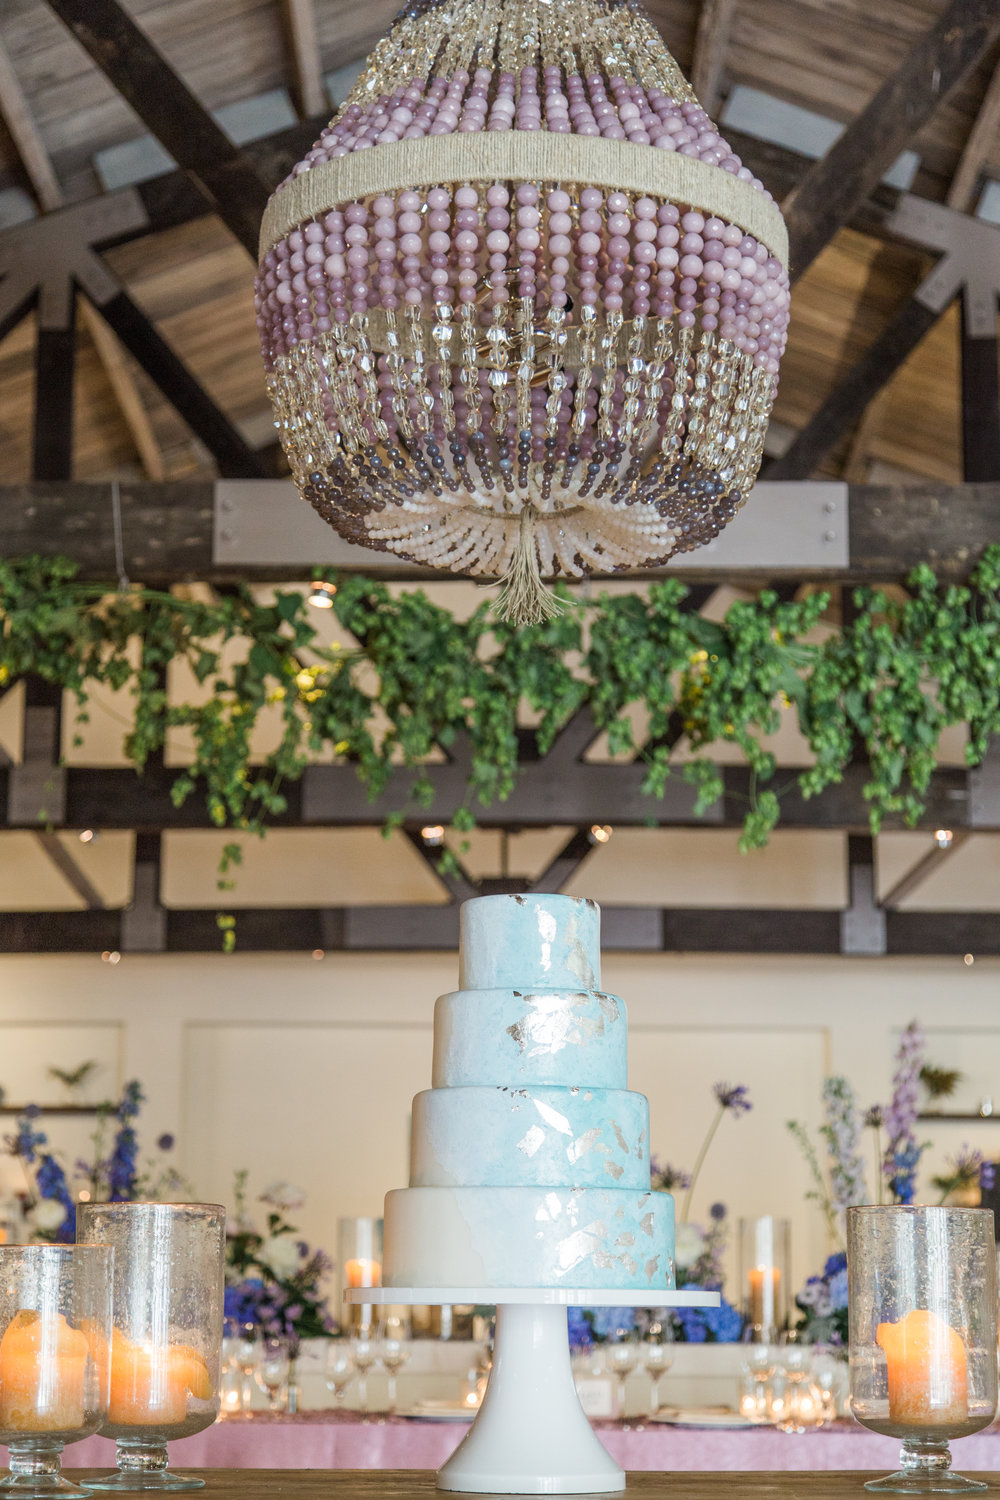 lilac, lavender & periwinkle luxury elopement wedding cake at cannon green charleston by scarlet plan & design for revolution wedding tours | Charleston, Greenville, Atlanta Wedding Planners